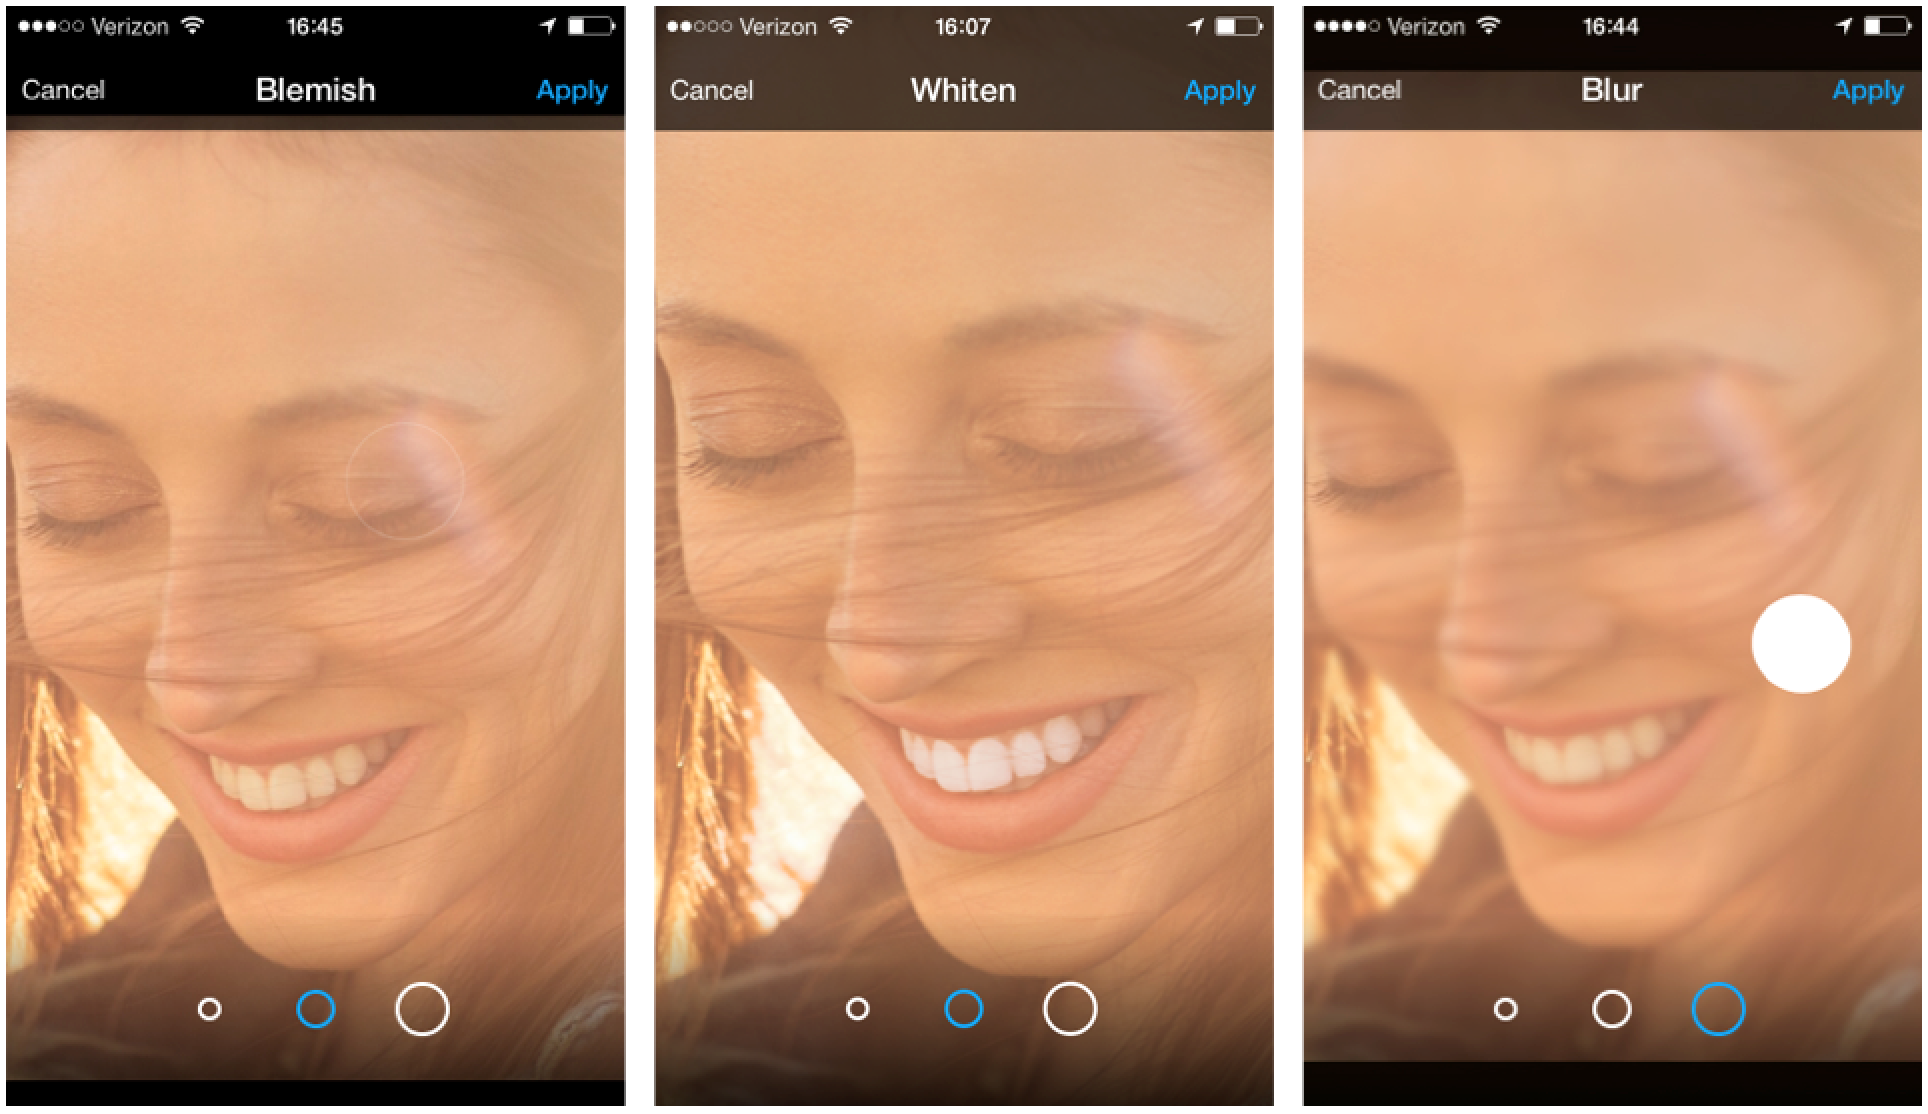 Style your selfies with our all-new blemish tool, teeth whiten tool and blur tool.